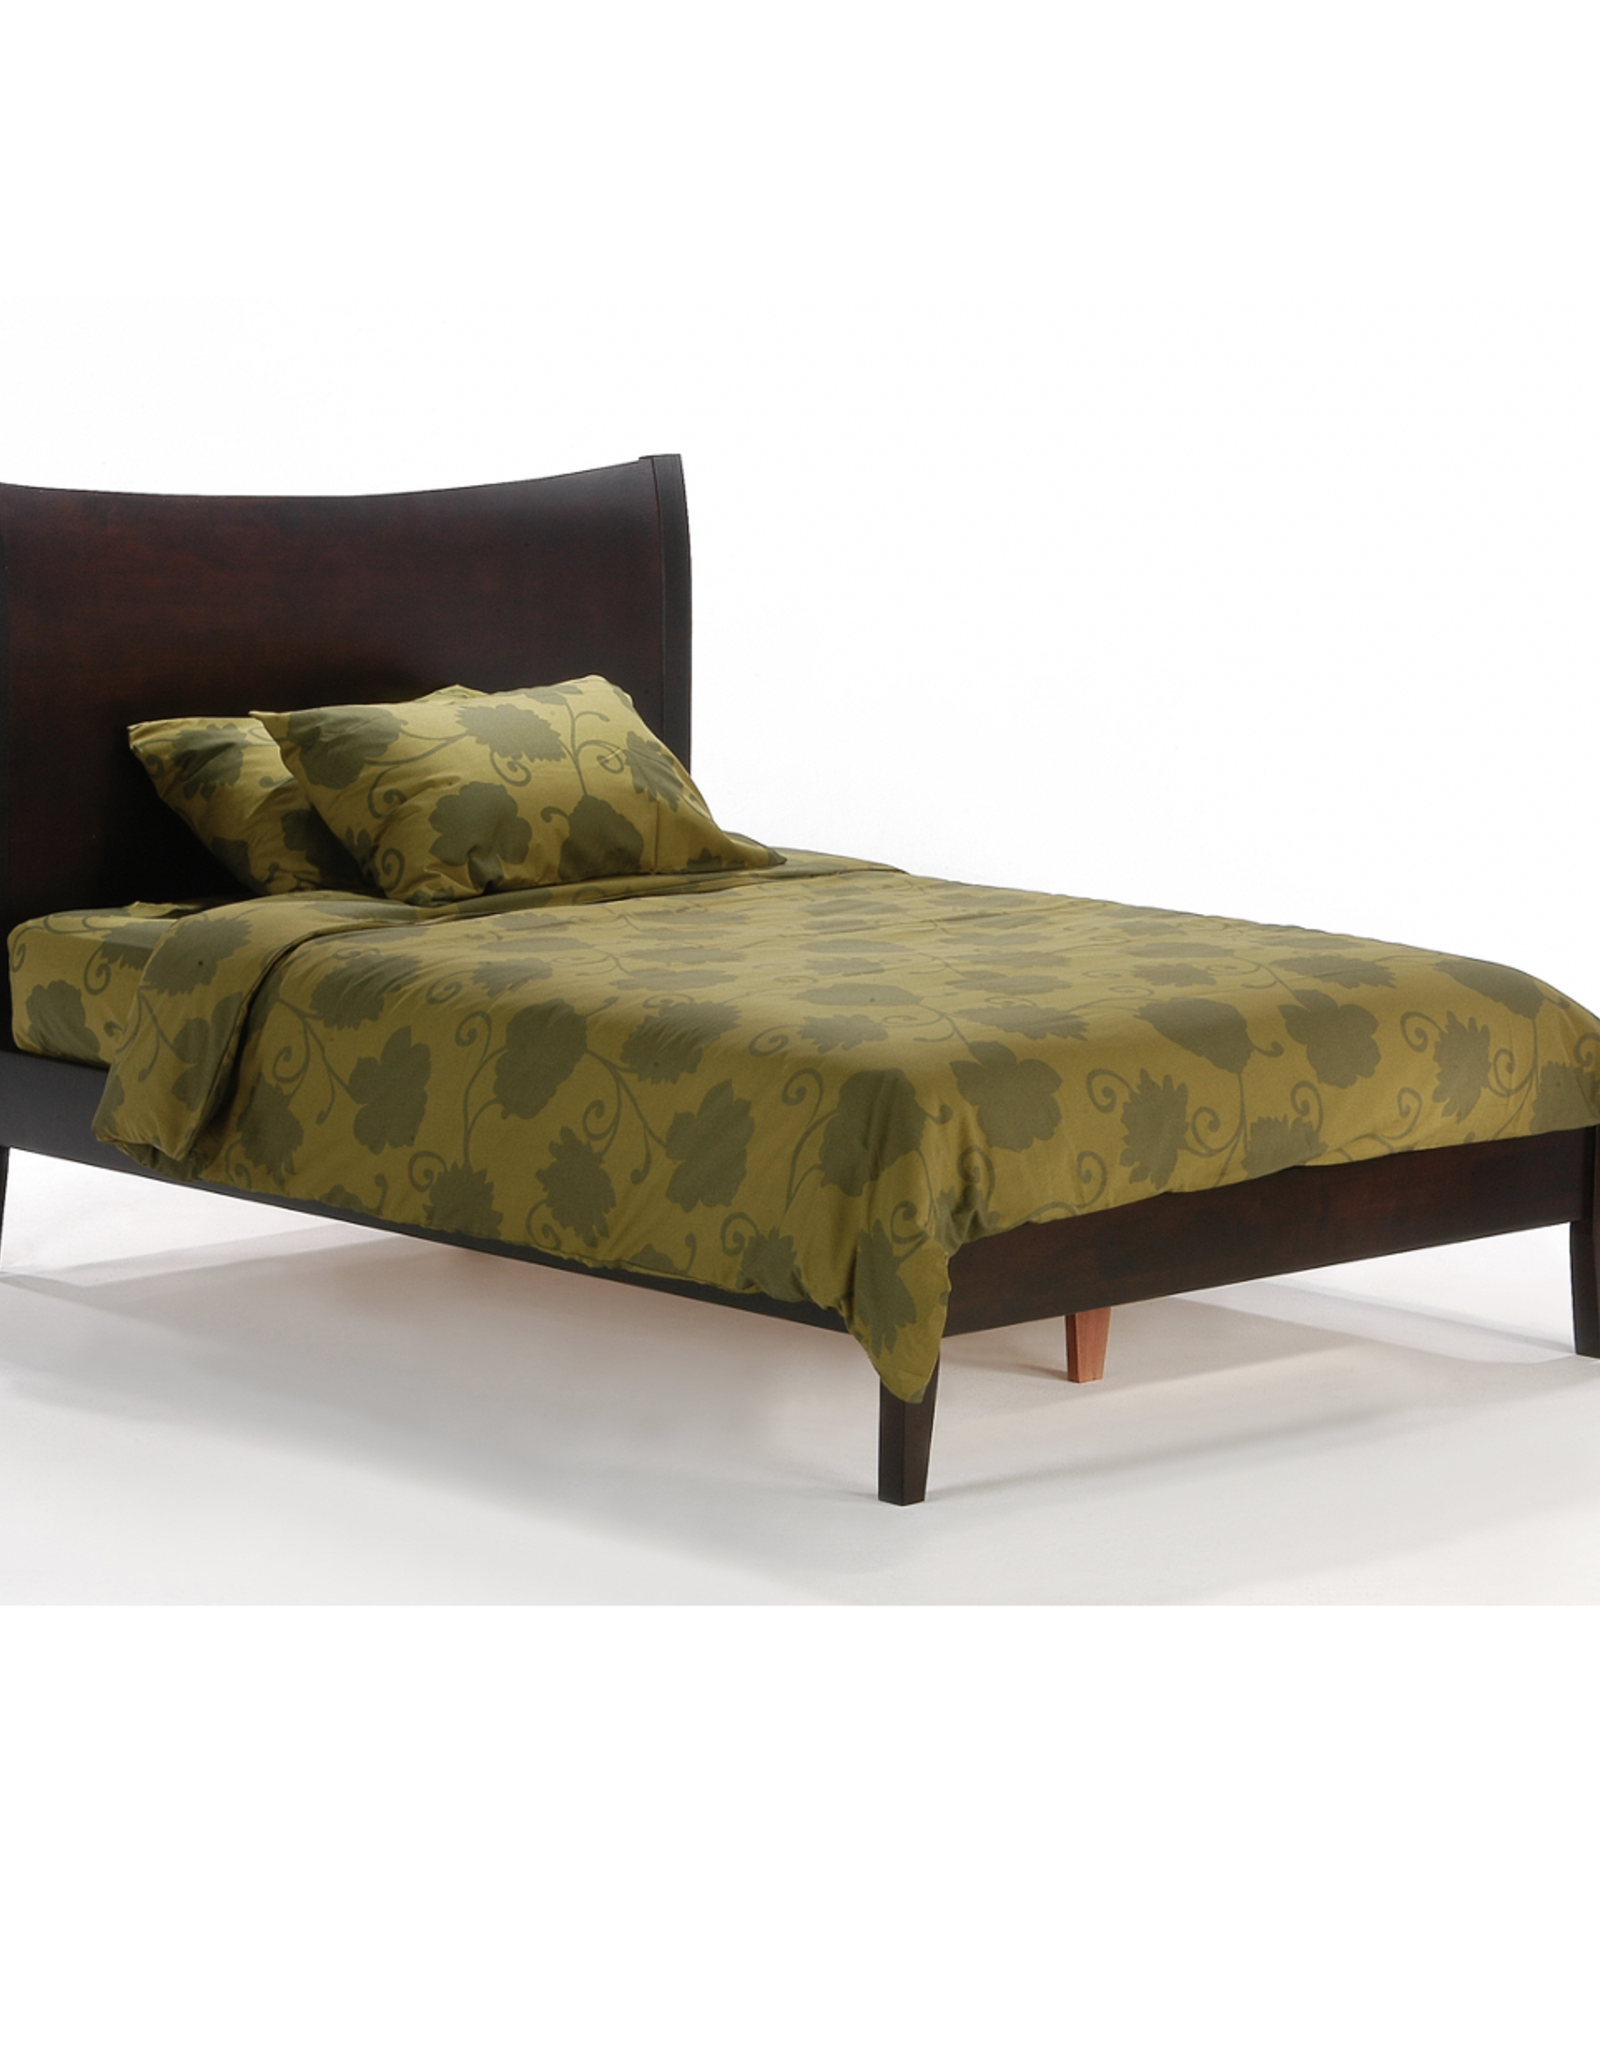 Blackpepper Platform Bed - Comes in Three Colors